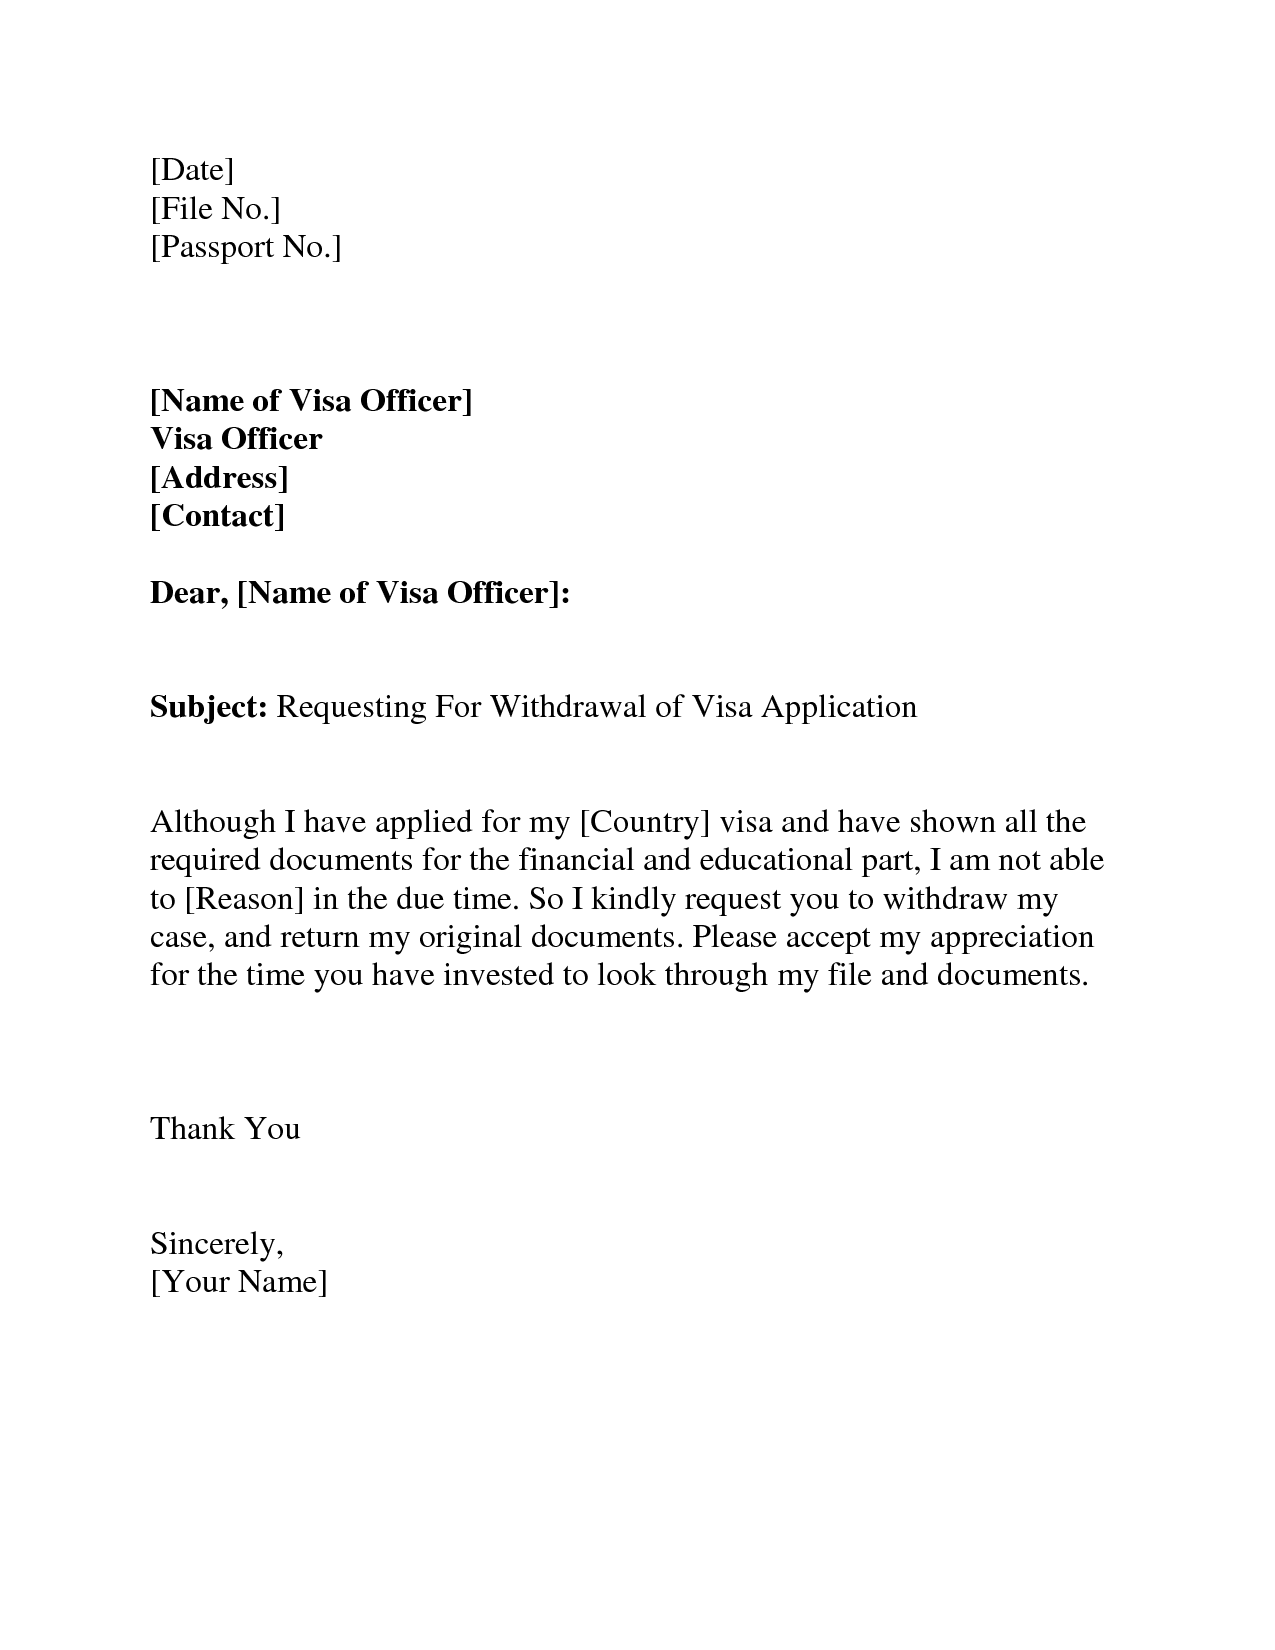 Visa withdrawal letter request letter format letter and emailvisa visa withdrawal letter request letter format letter and emailvisa invitation letter to a friend example application letter sample altavistaventures